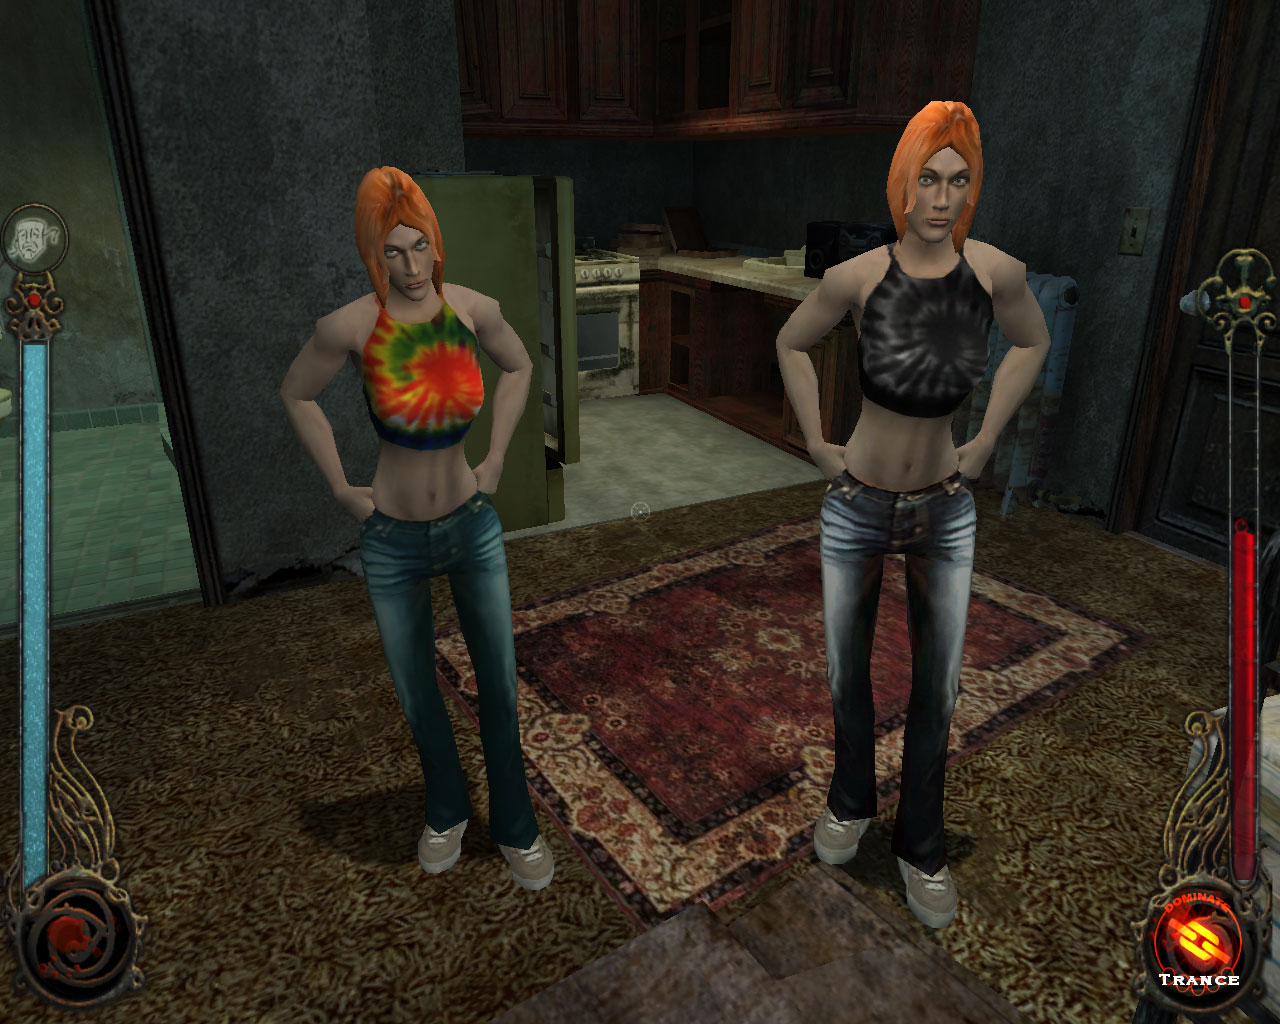 Vampire the masquerade sex mod nsfw galleries